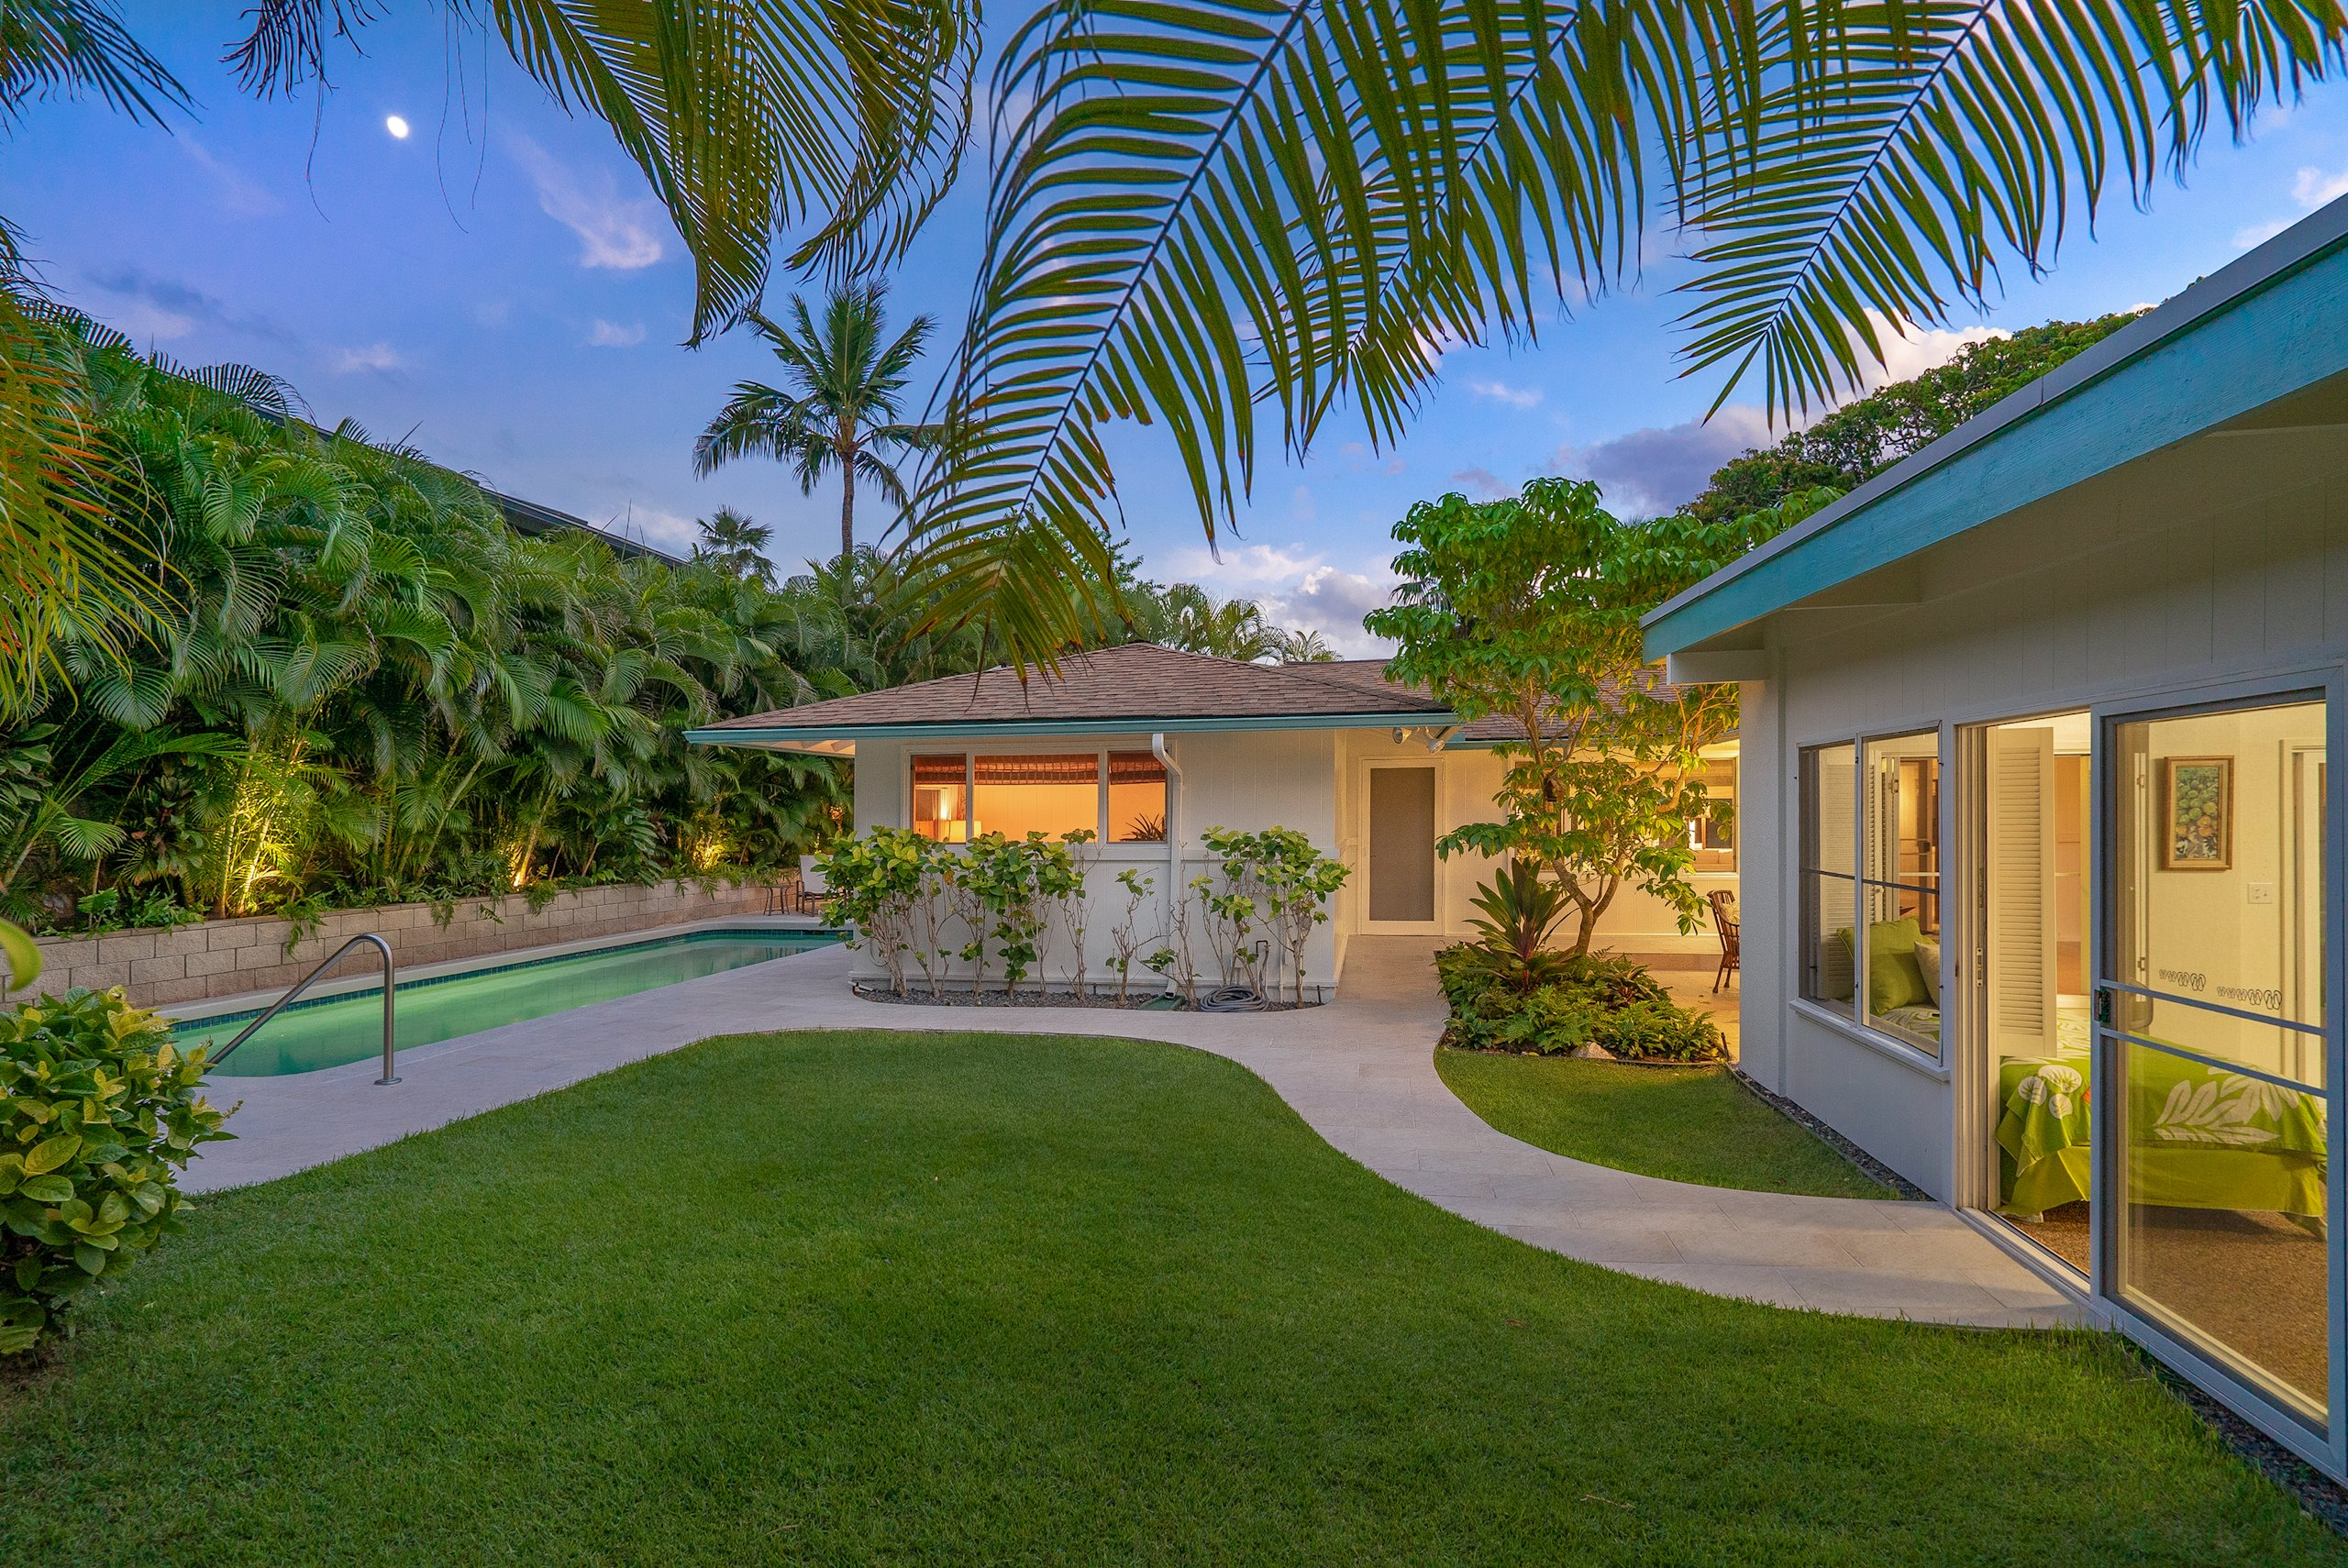 This Kailua Hale, one block from the beach,  was expertly designed by Honolulu architect Robert Alexander Lazo and renovated in 2000. The home has ample gathering spaces to entertain and the level lot is set back with lush landscaping that maximizes privacy while you enjoy the pool house and spa. Thoughtful elements of this single-level home, like a walk-in master shower and a ramp to the pool, accommodate aging-in-place. Stay comfortable year-round with central and split system A/C offset by leased PV panels and solar hot water. This address affords the opportunity to join the private Kalama Beach Club one block away. See the tour at http://player.vimeo.com/video/373016154. Broker's Open Thursday, 12/12 from 10:00 a.m. to 12:00 p.m. and Sunday, 12/15 from 2:00 p.m. to 4:00 p.m.